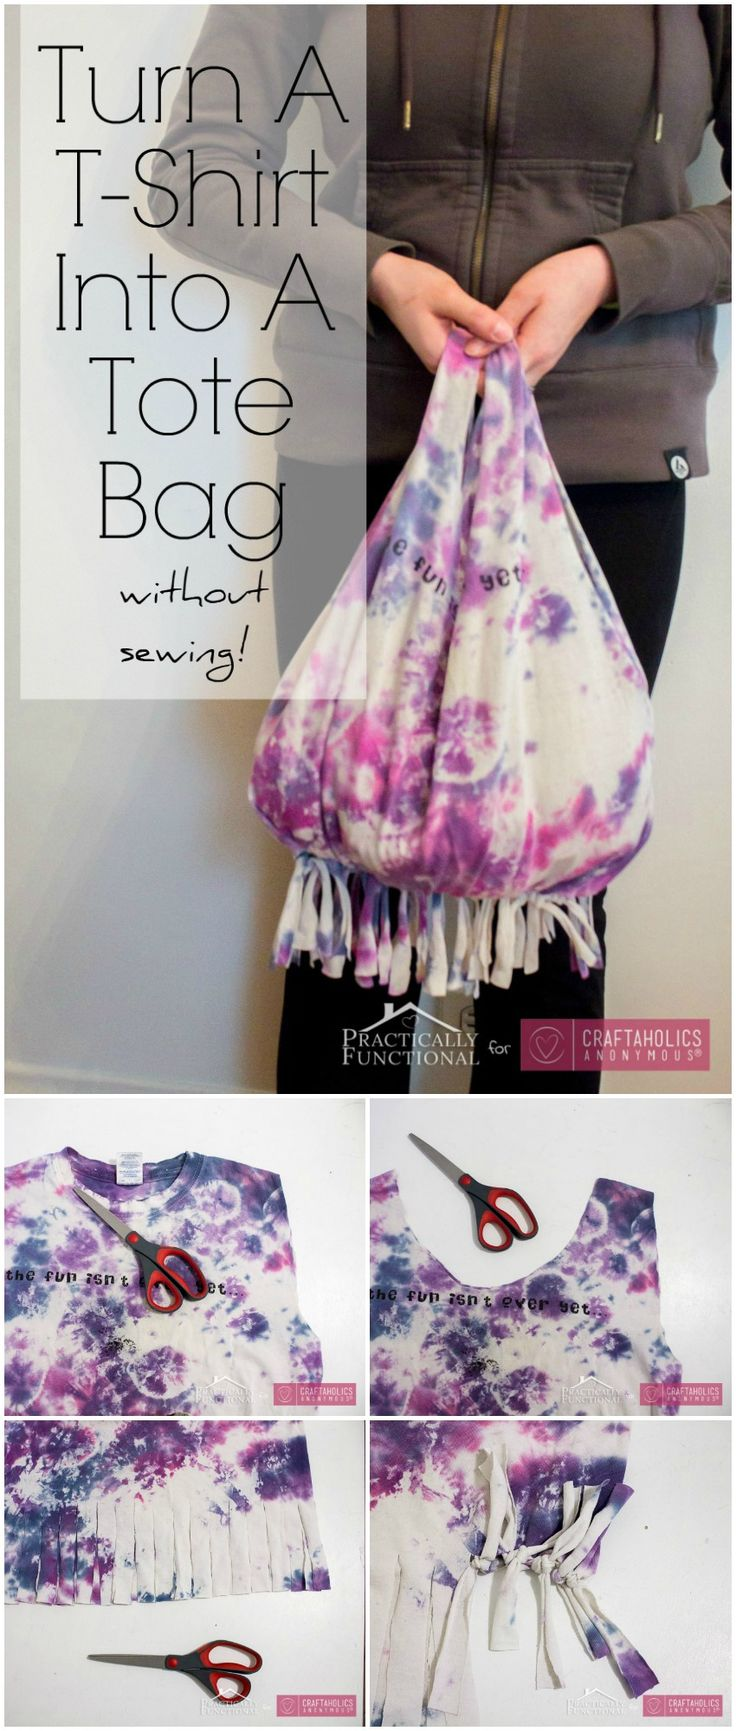 How to turn a tee into a bag without sewing || I think I'll do this with my church youth group!